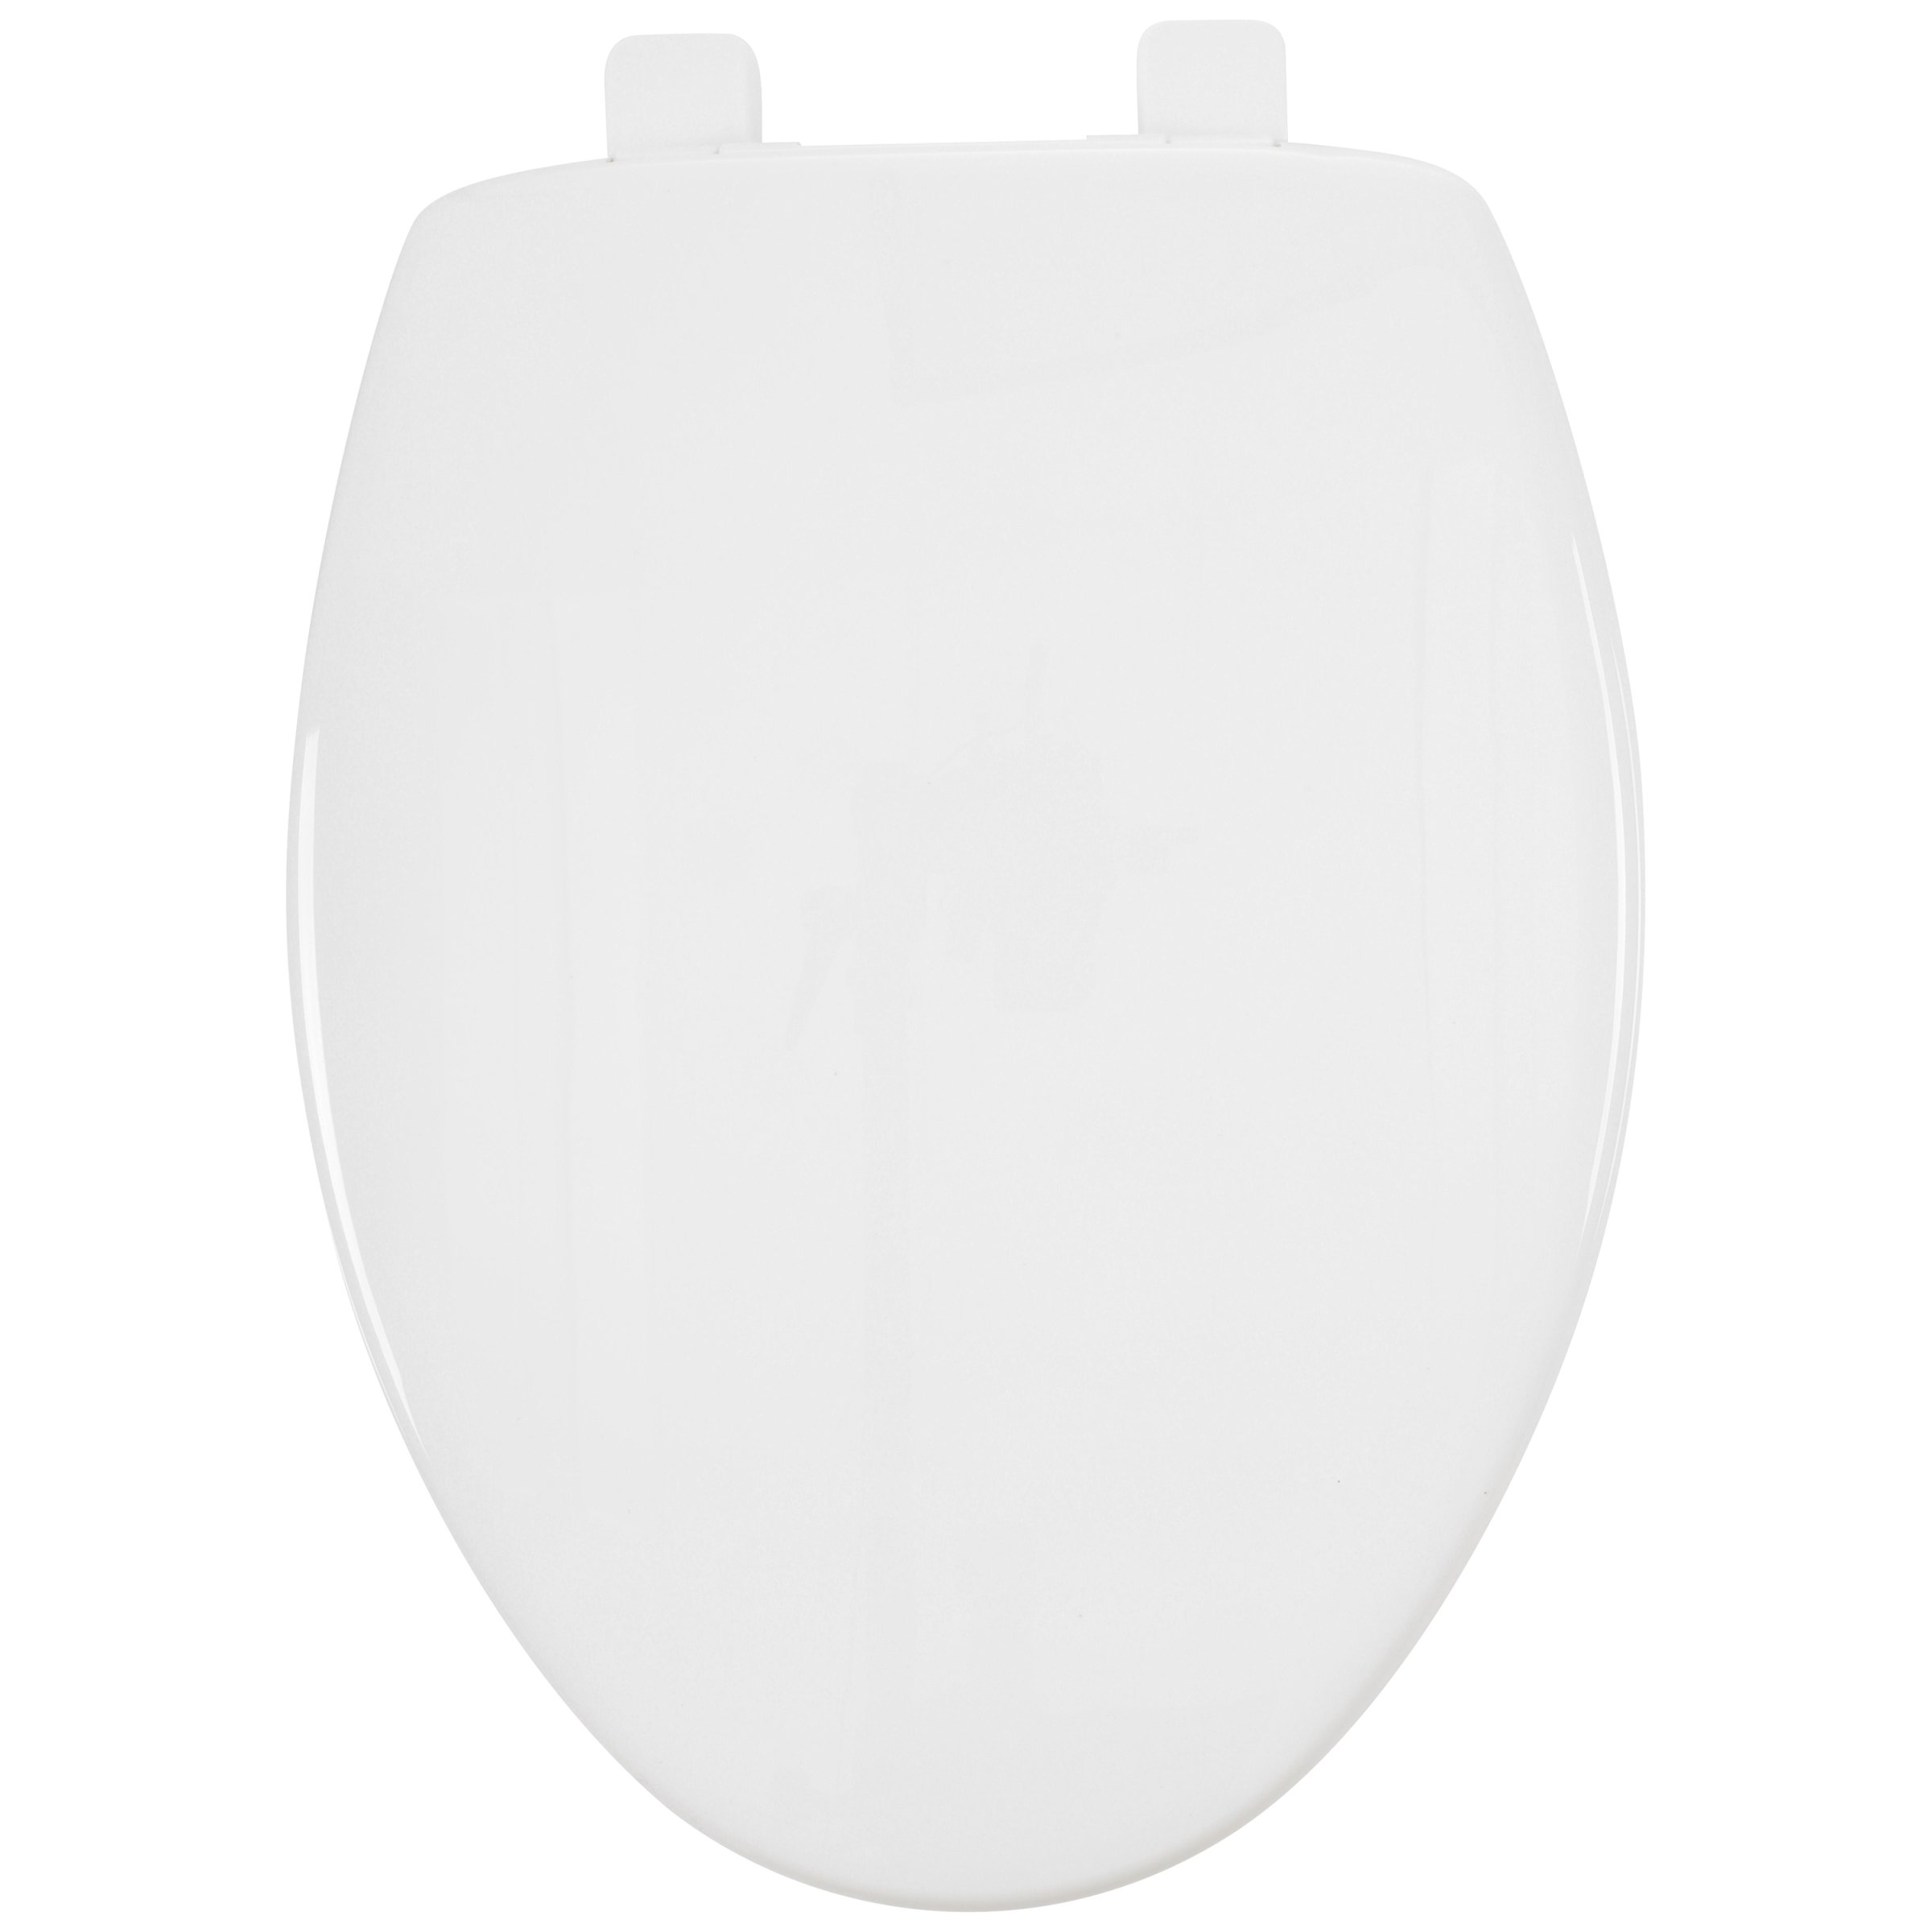 Magnificent Mayfair Elongated Toilet Seat With Sta Tite System Walmart Com Evergreenethics Interior Chair Design Evergreenethicsorg